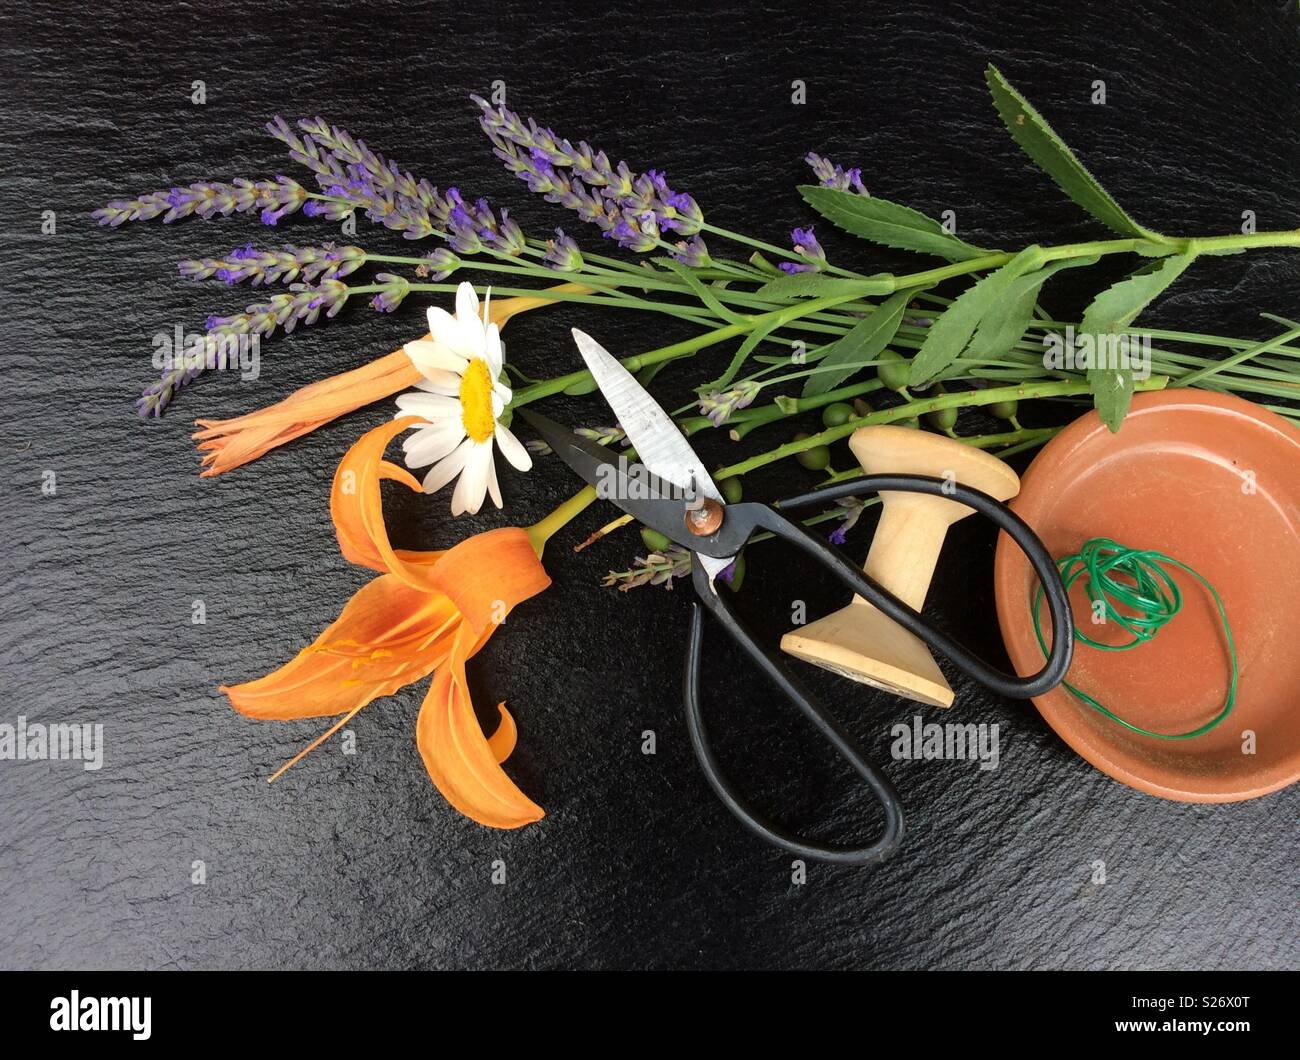 Elevated view on floristic background. Blooming lavender, single blossom of a marguerite, day lily, vintage scissors and green florist wire from a wooden spool Stock Photo